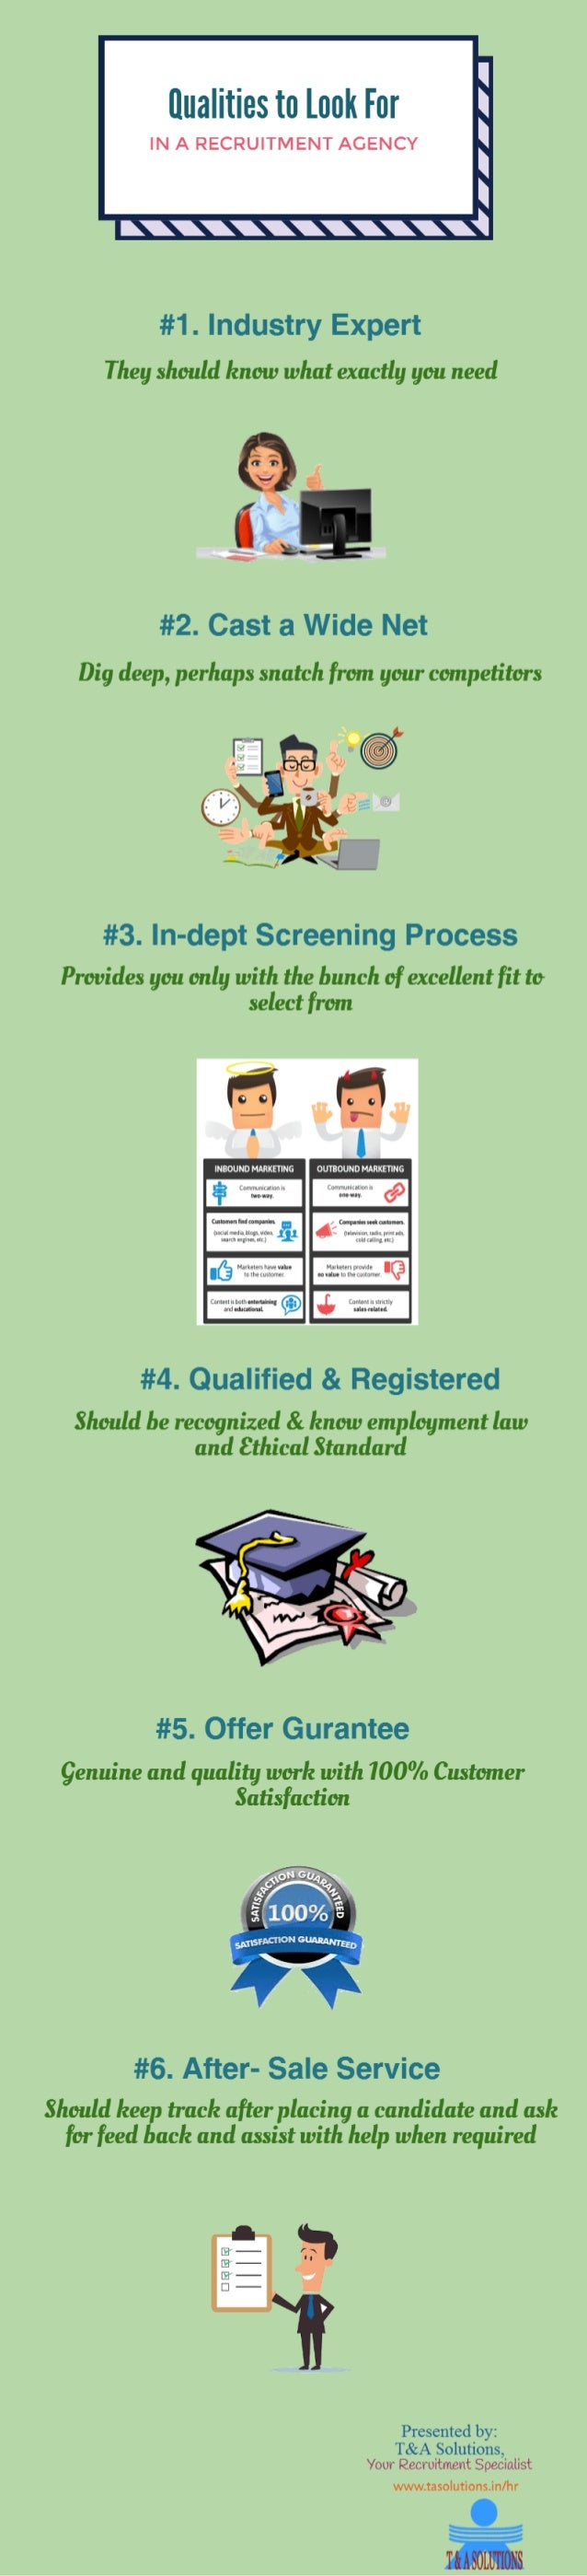 Qualities To Look For In A Recruitment Agency